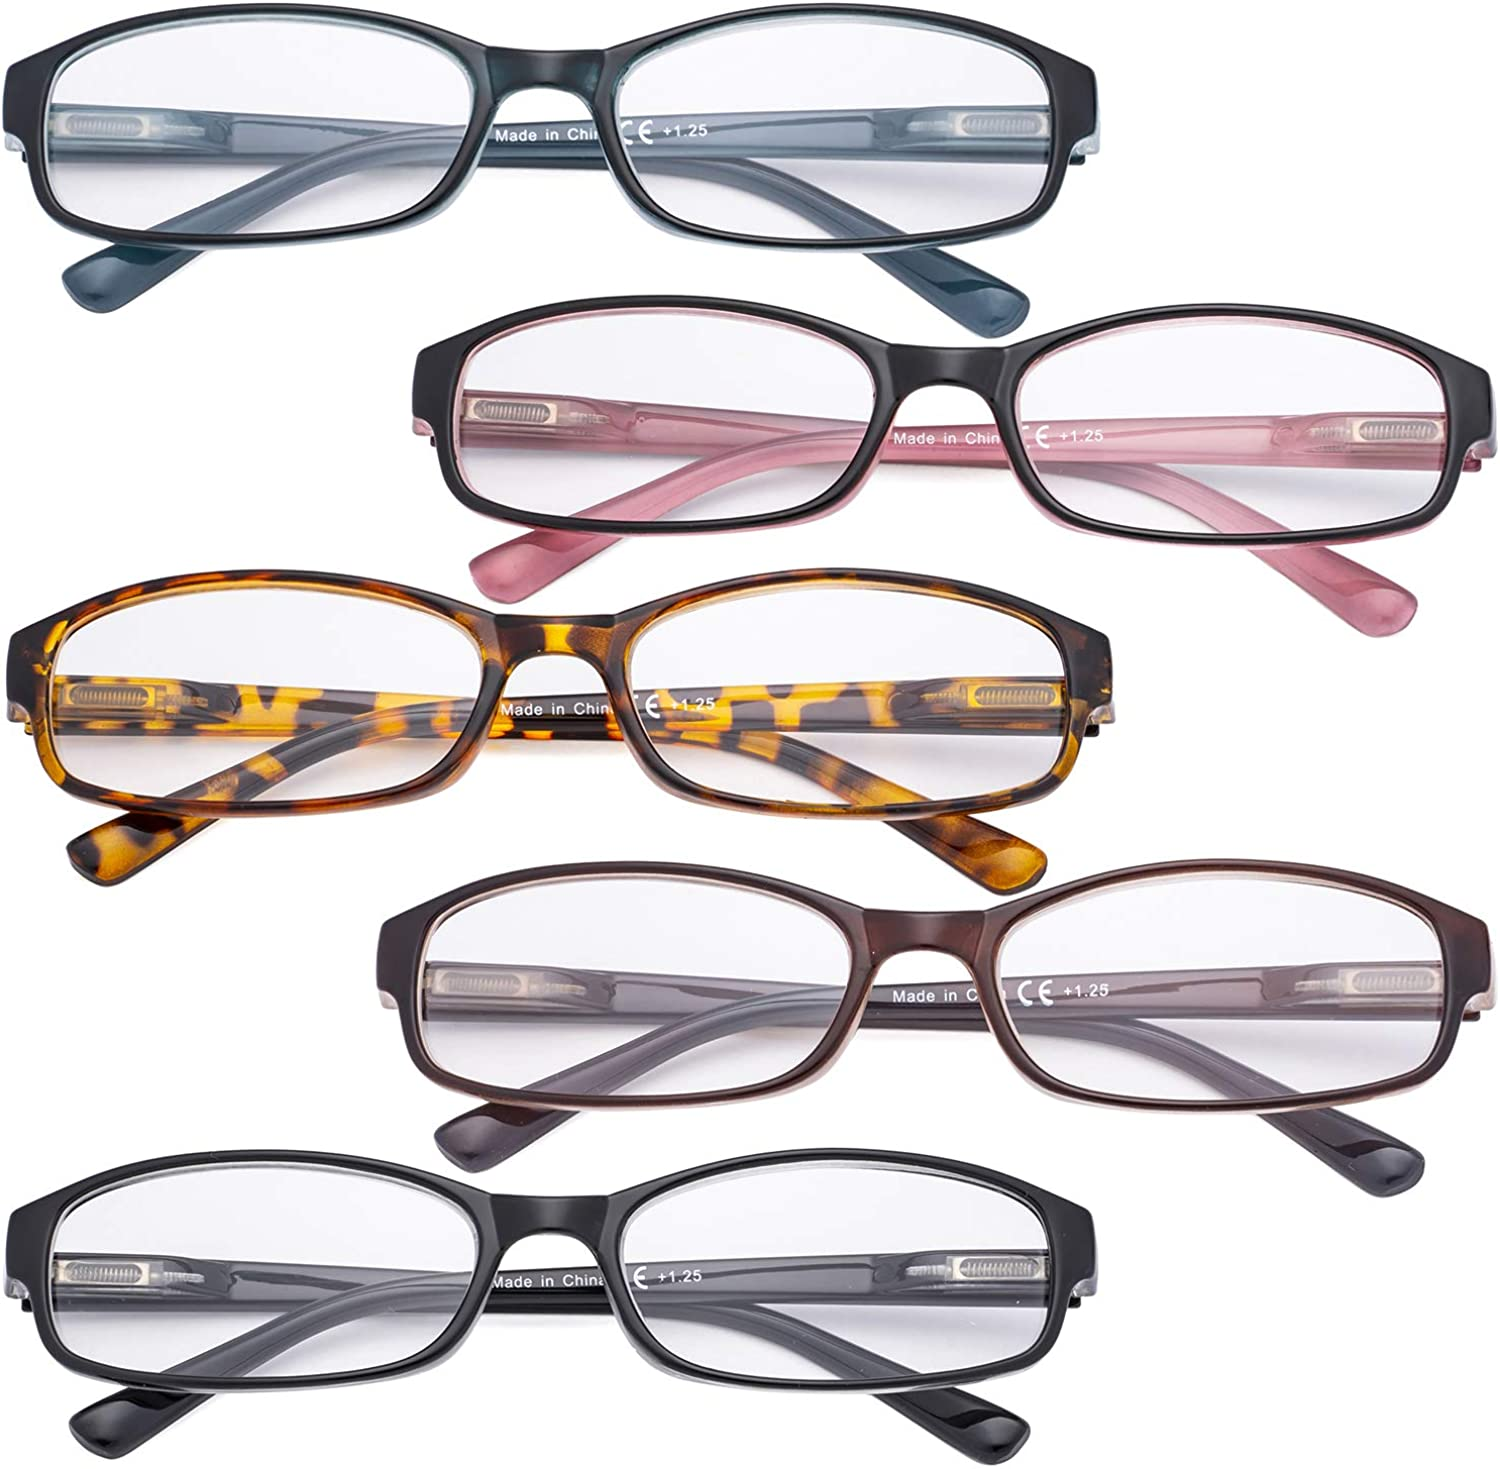 CessBlu Ladies Reading Glasses 20 Pairs Fashion Reader Eyeglasses with  Spring Hinge for Women